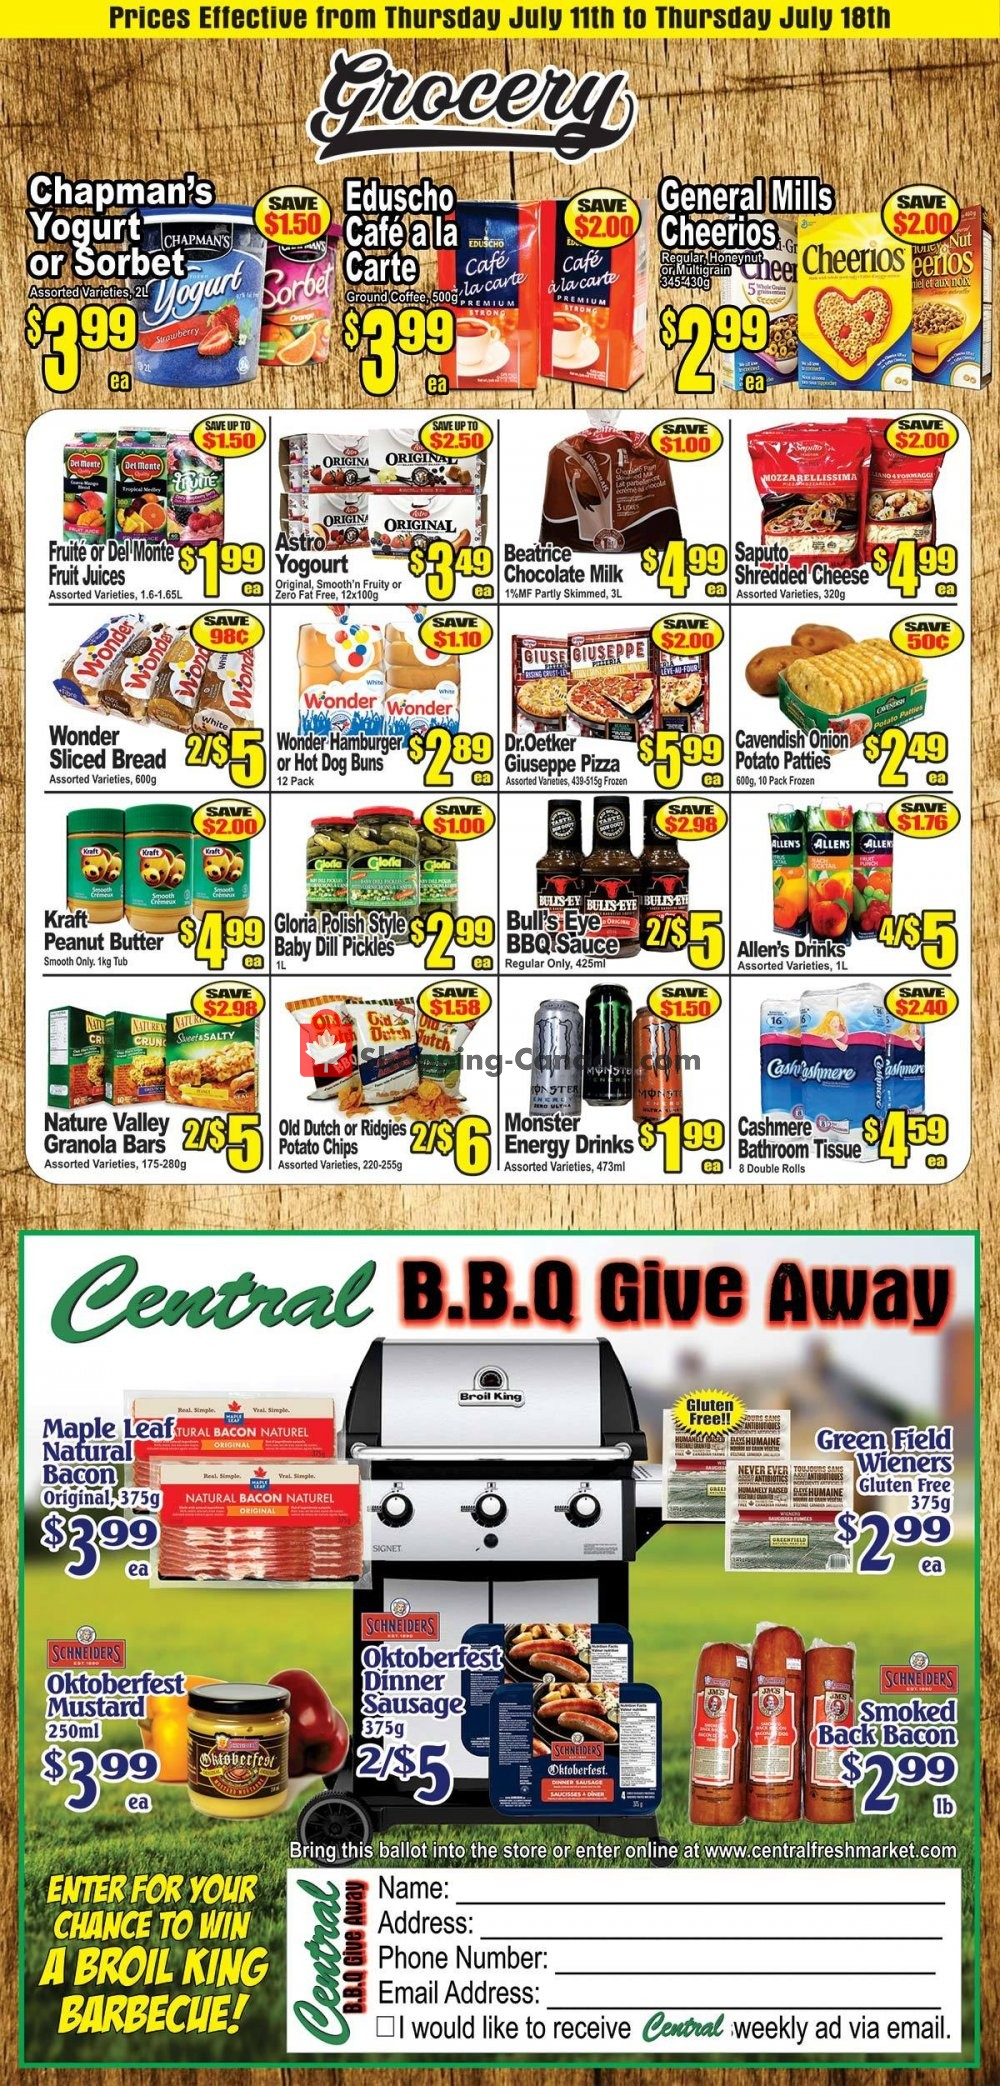 Flyer Central Fresh Market Canada - from Thursday July 11, 2019 to Thursday July 18, 2019